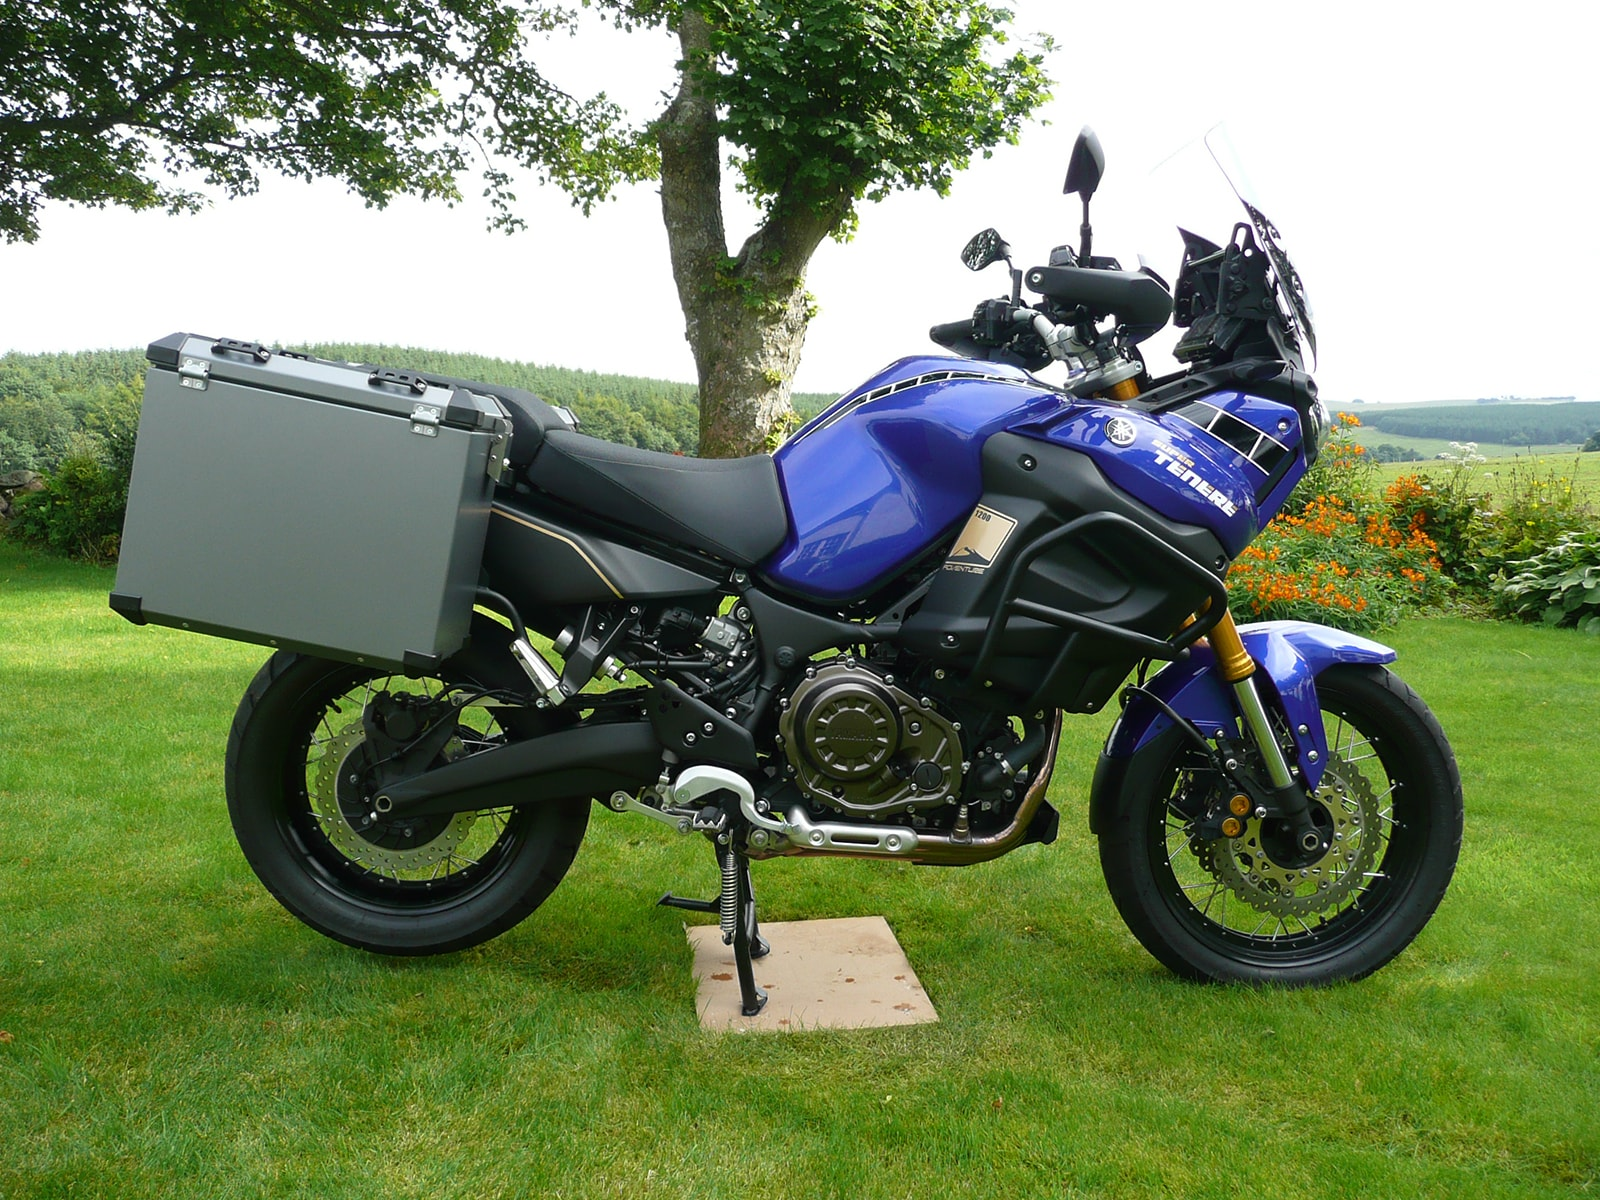 Pannier systems